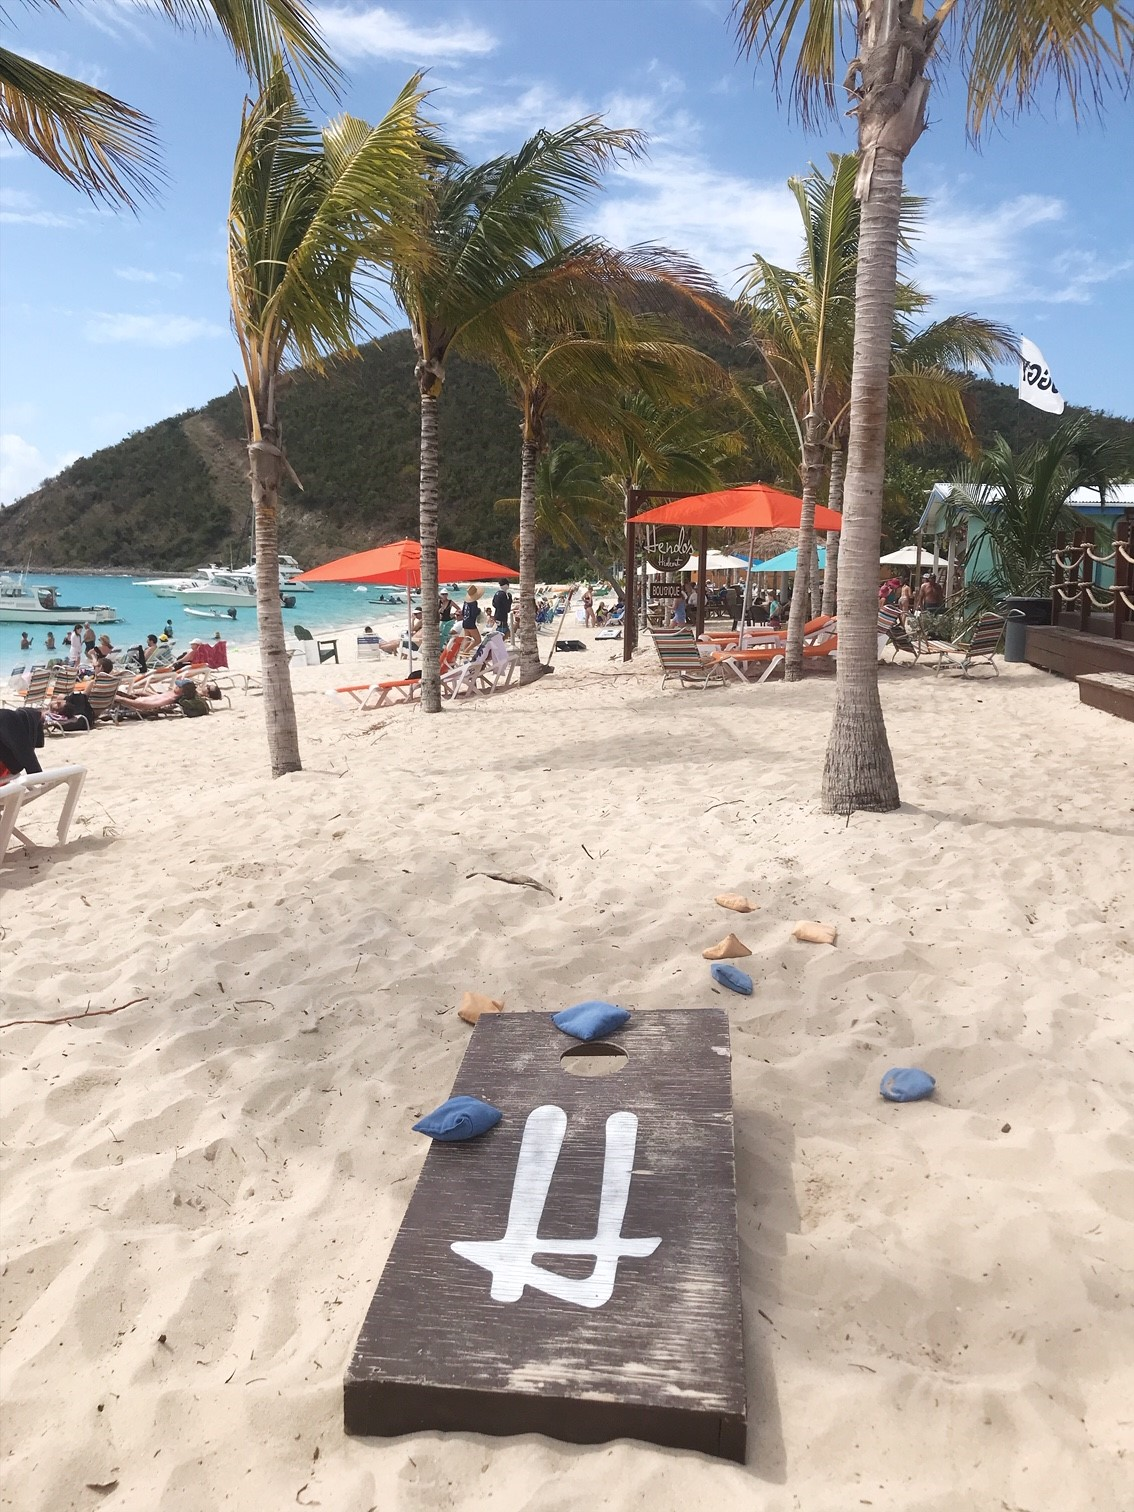 White Bay, Jost van Dyke - British Virgin Islands